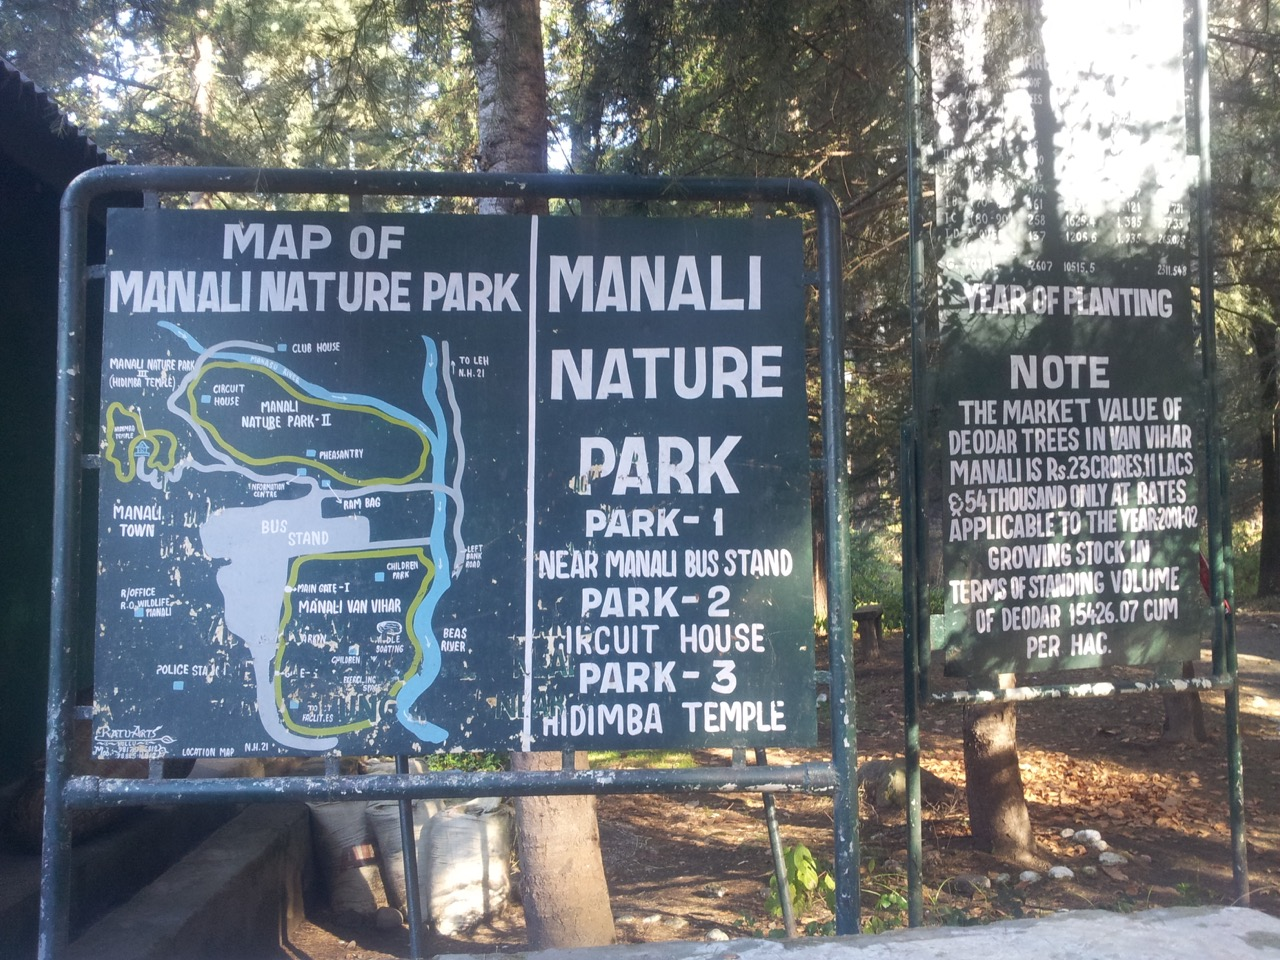 I got to know that I had walked beside zone 2 and went through zone 3 of the Manali forest land to reach Hidimba temple yesterday.